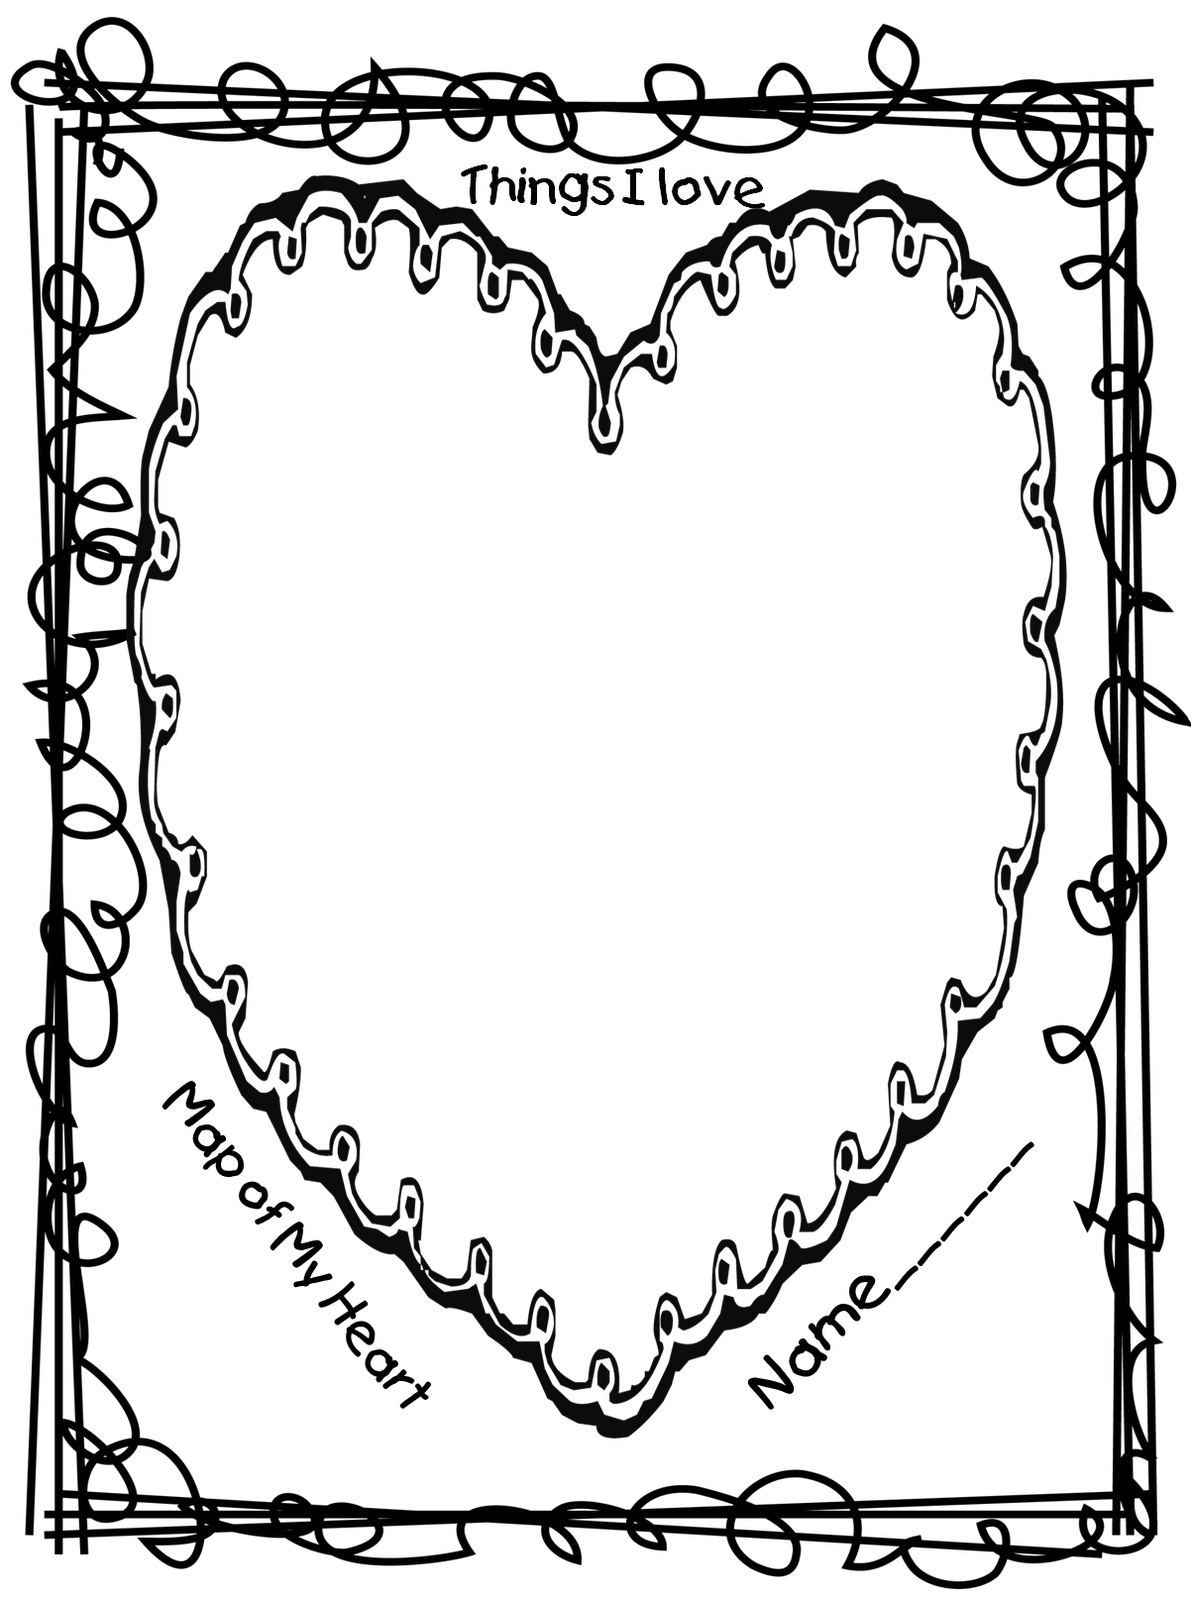 Heart writing template with lines 293603 - hitori49.info